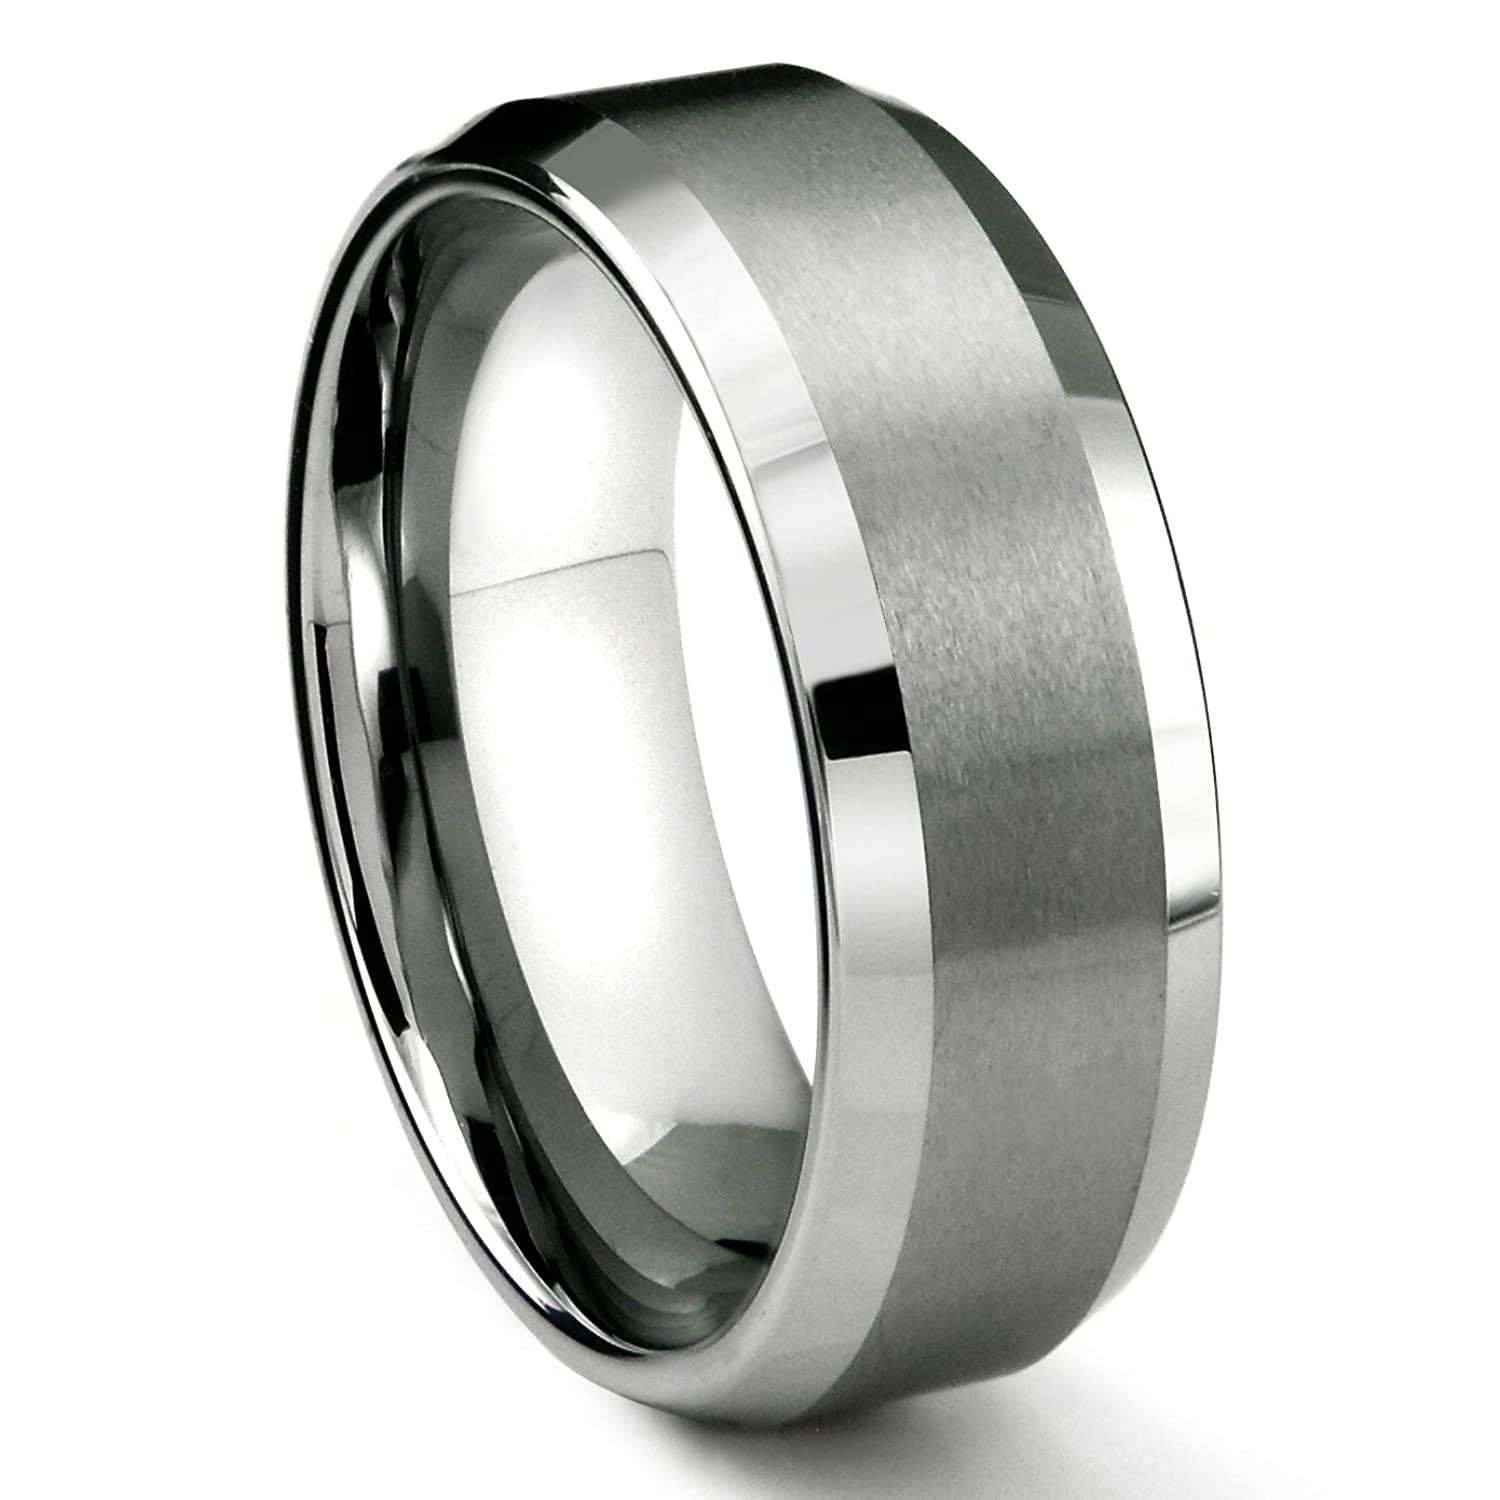 6mm Comfort Fit Wedding Band